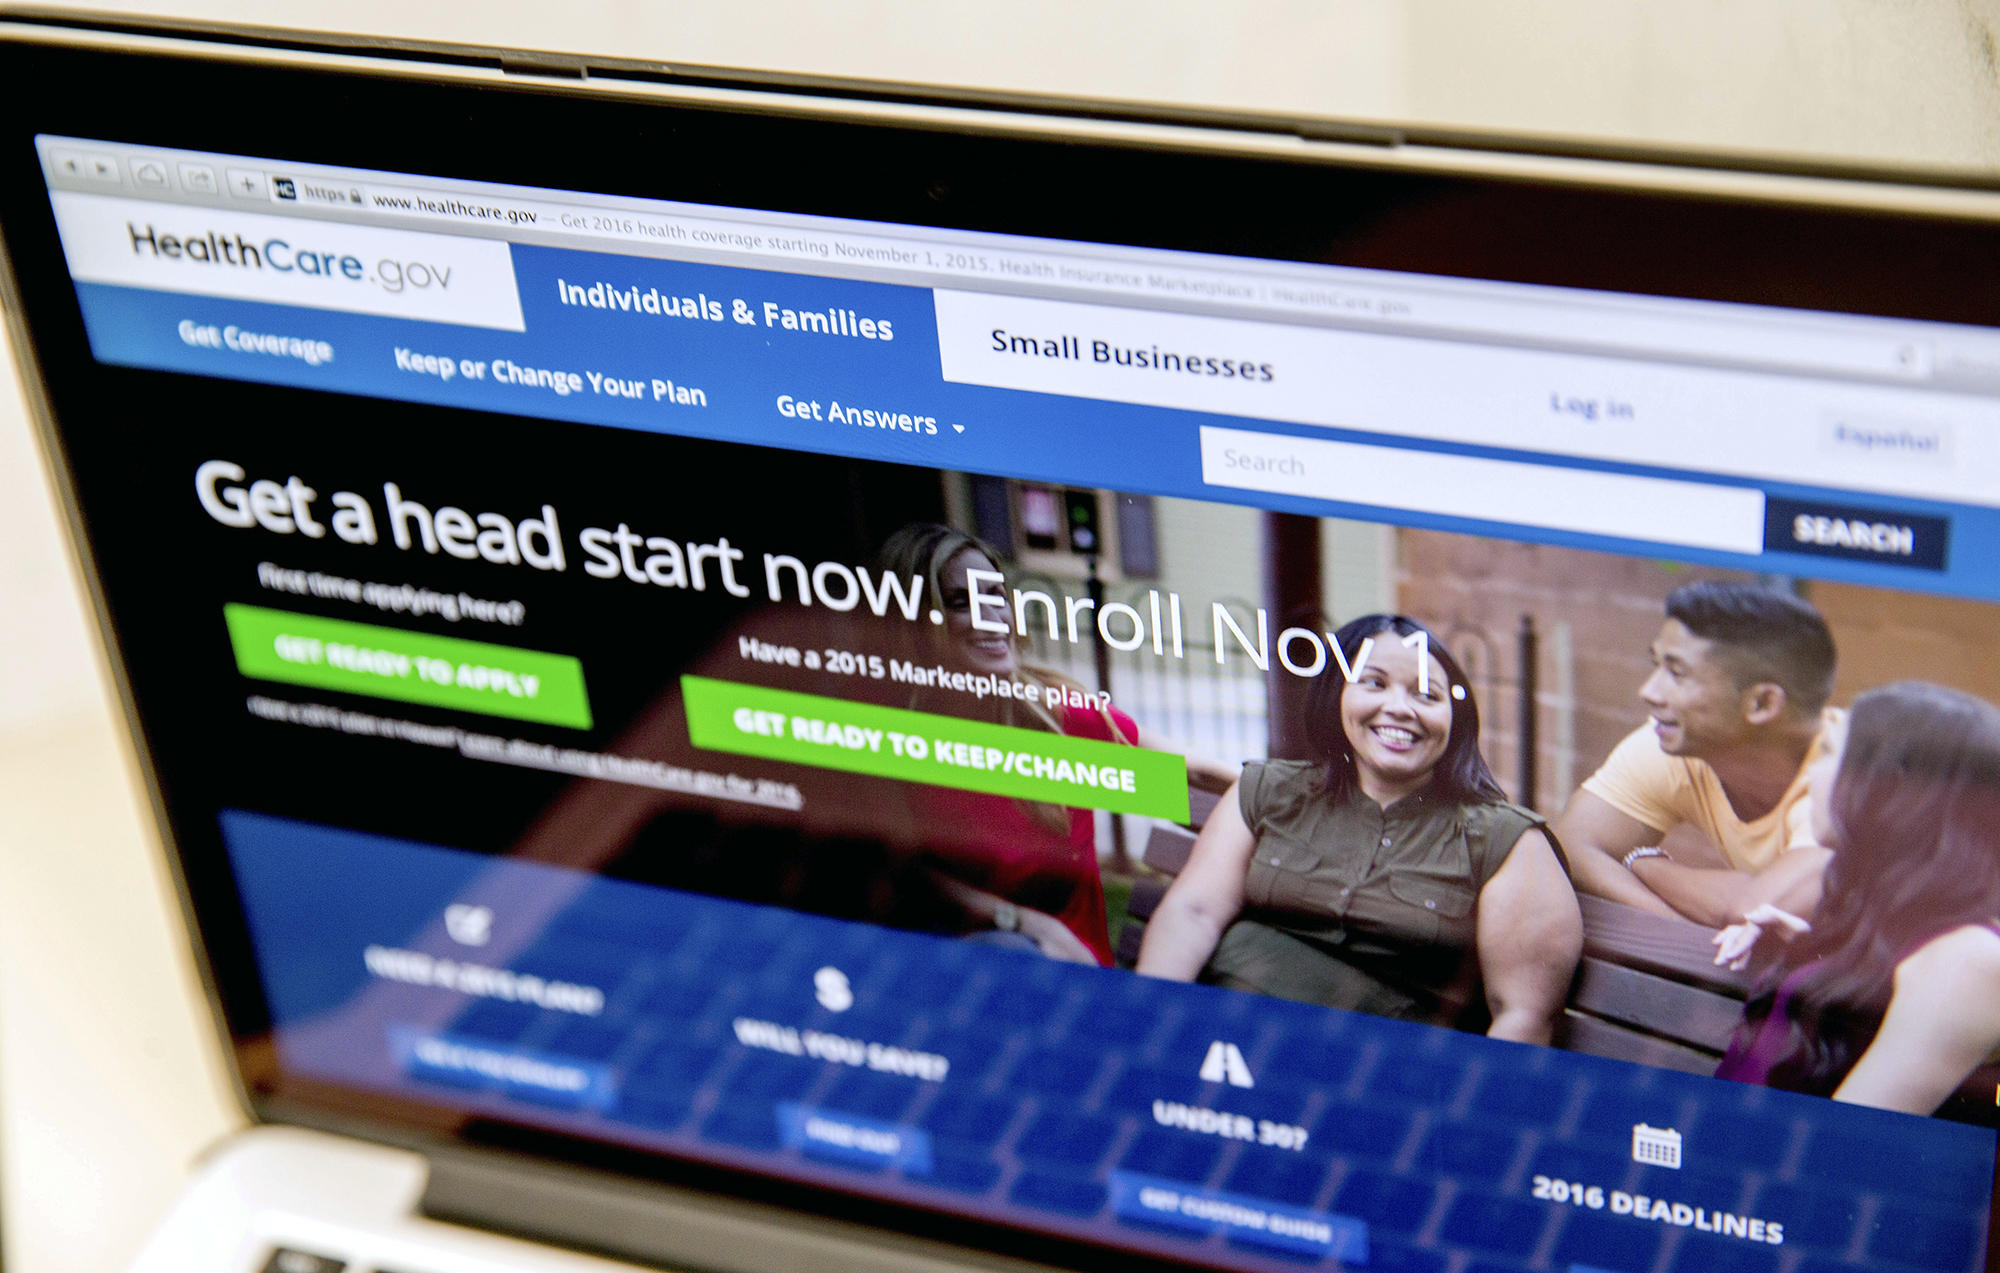 Every US county poised to have Obamacare insurer